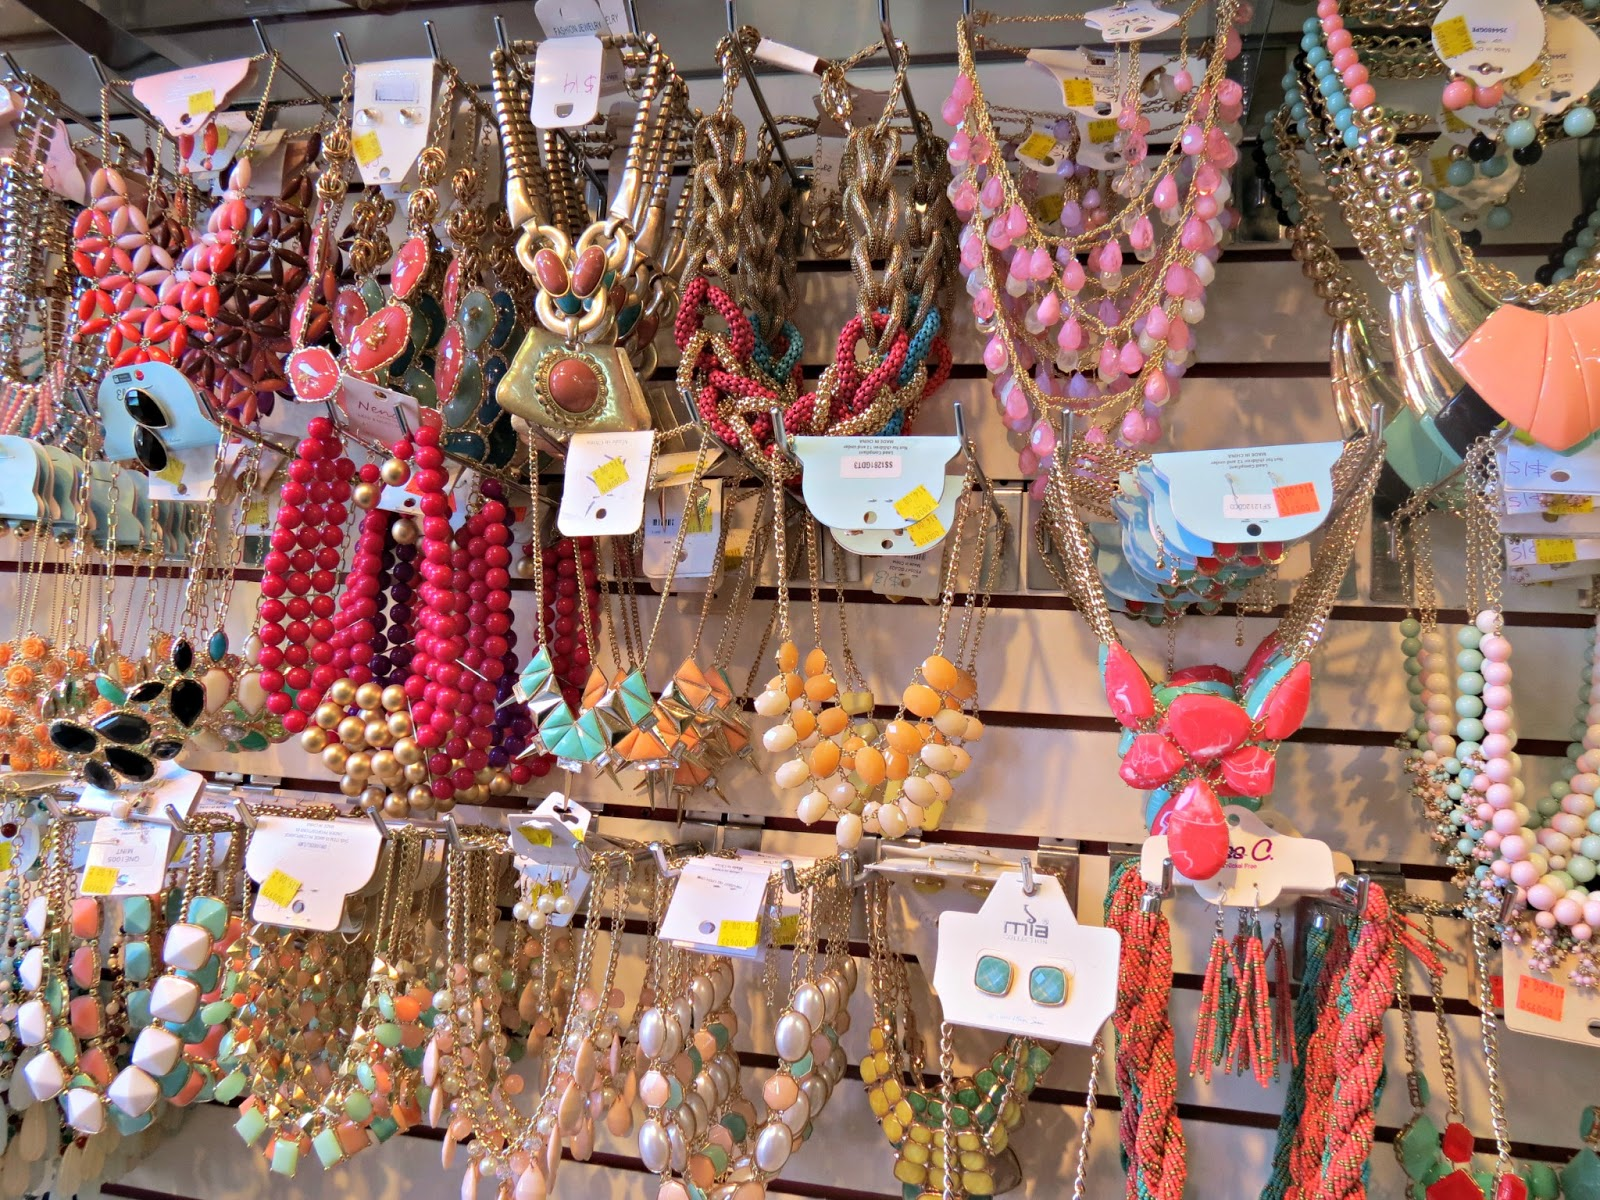 The Santee Alley: High Bijoux Fashion Jewelry & Accessories